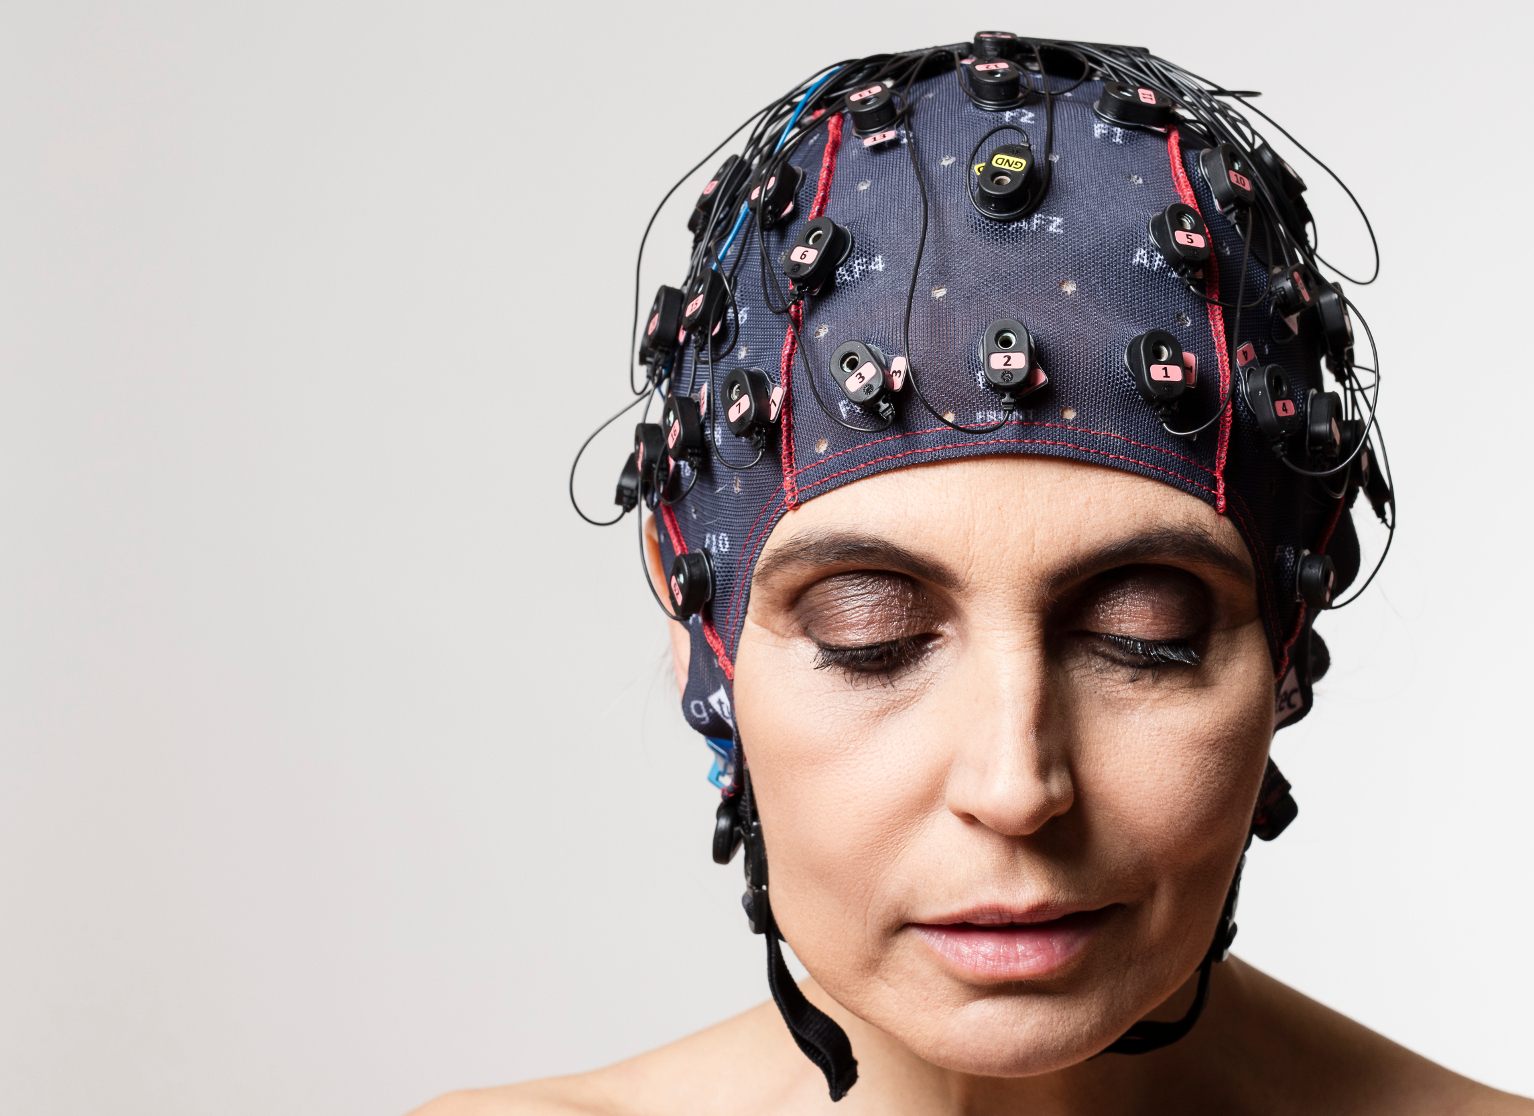 Brainwave Scanners Unlocking The Hidden Lives Of Coma Patients Cool Circuits Puts Your Brain Muscle To Test Electrodes Inside A Soft Cap Which Has Been Tested On Healthy Volunteers Measure Activity Tell If Patient Is Conscious And So